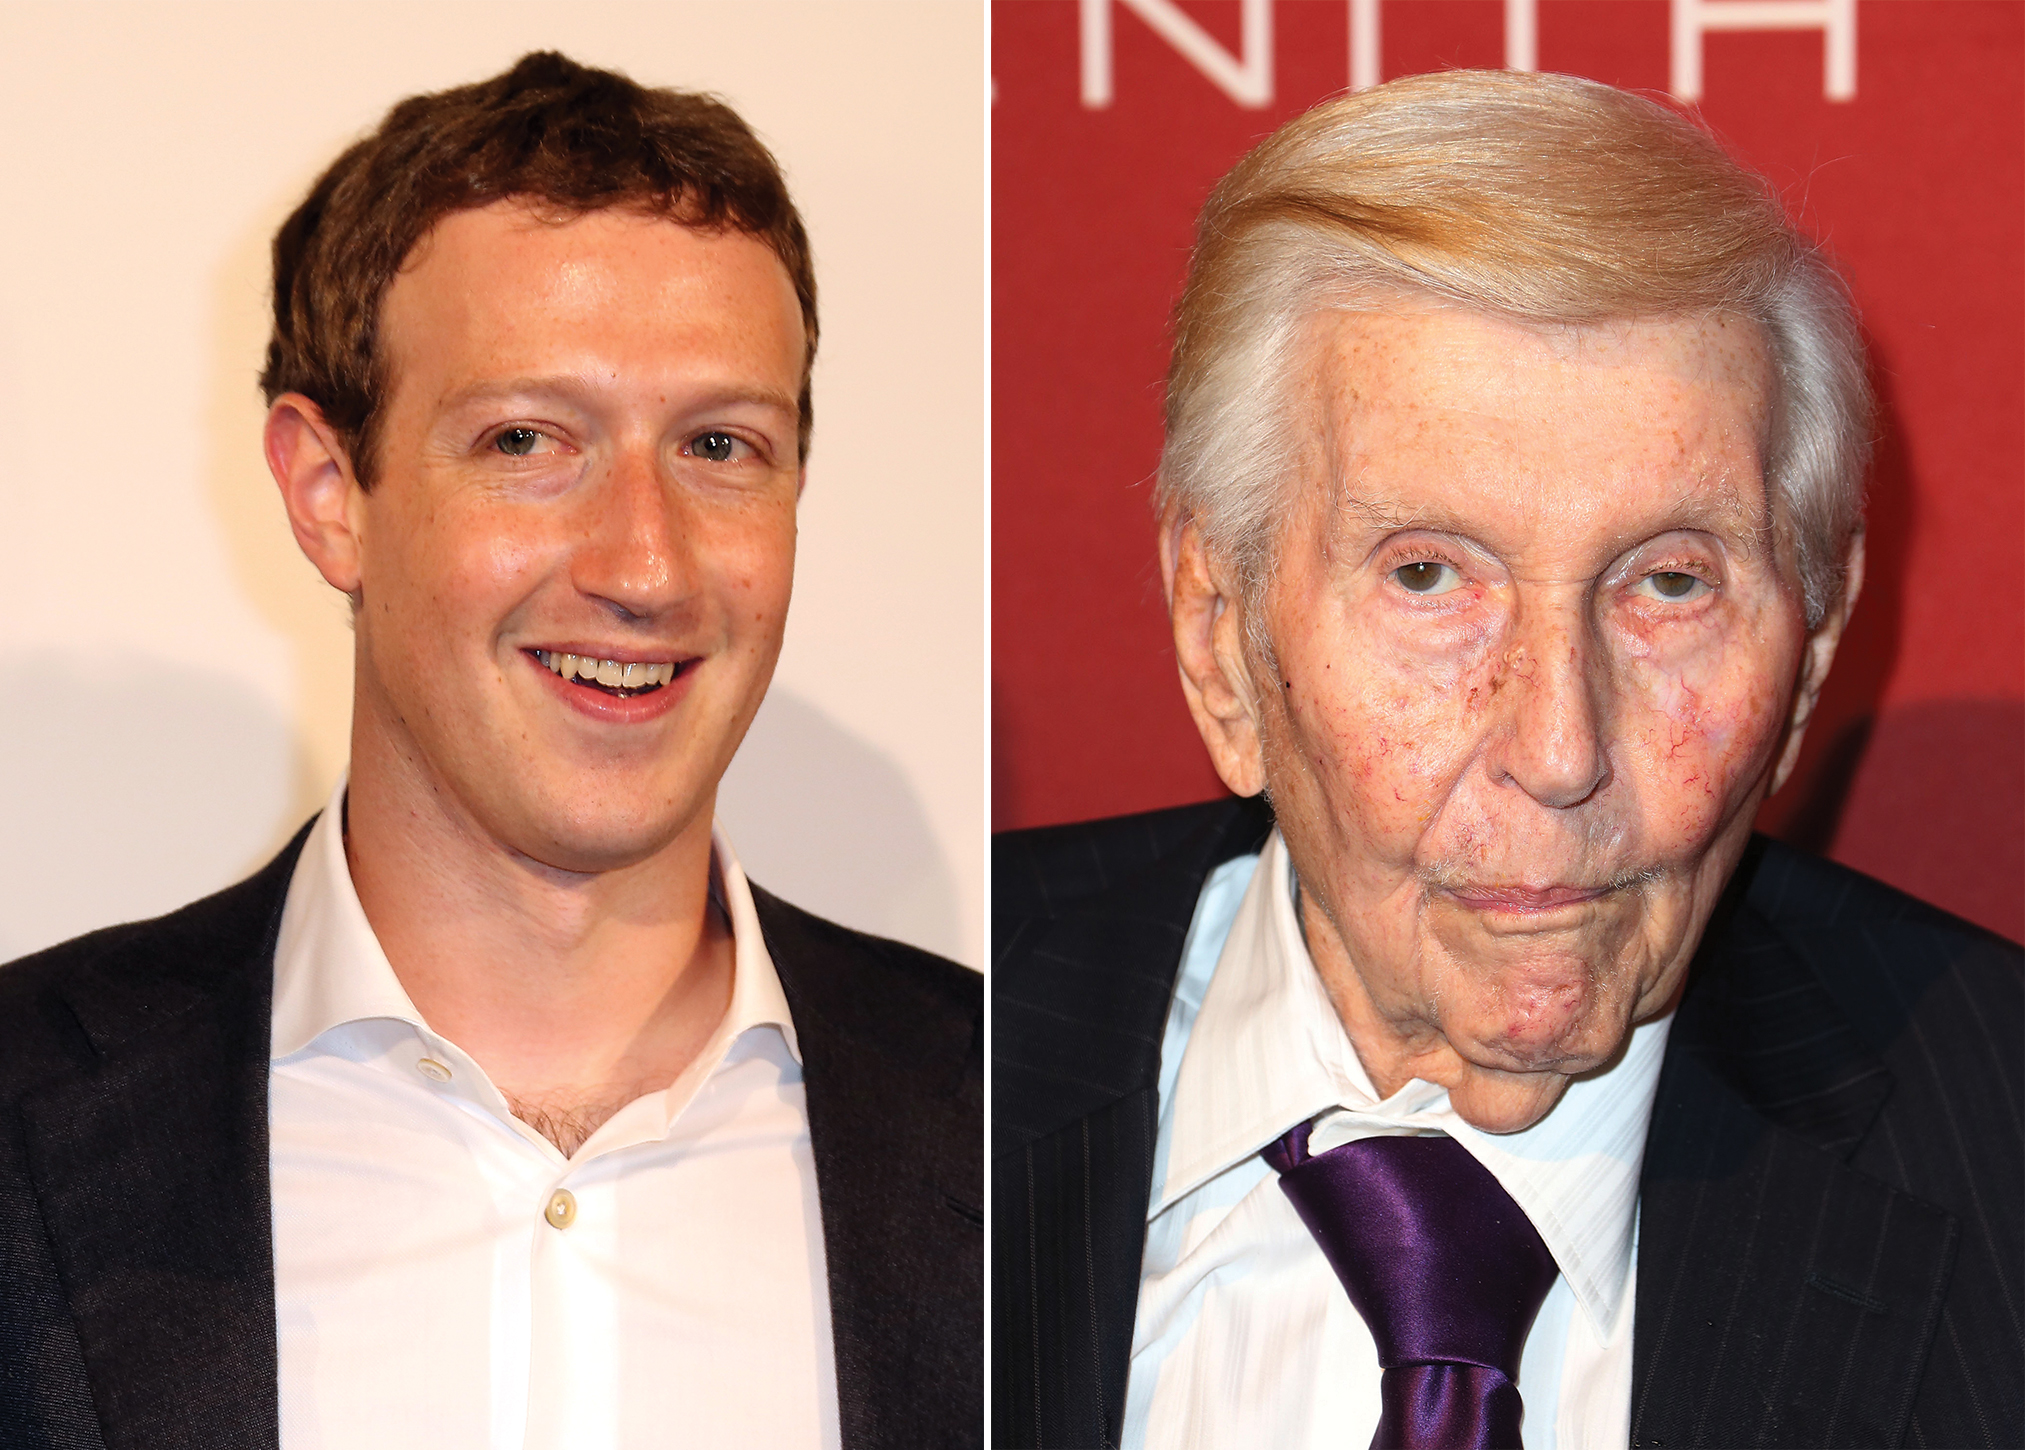 Mark Zuckerberg and Sumner Redstone.